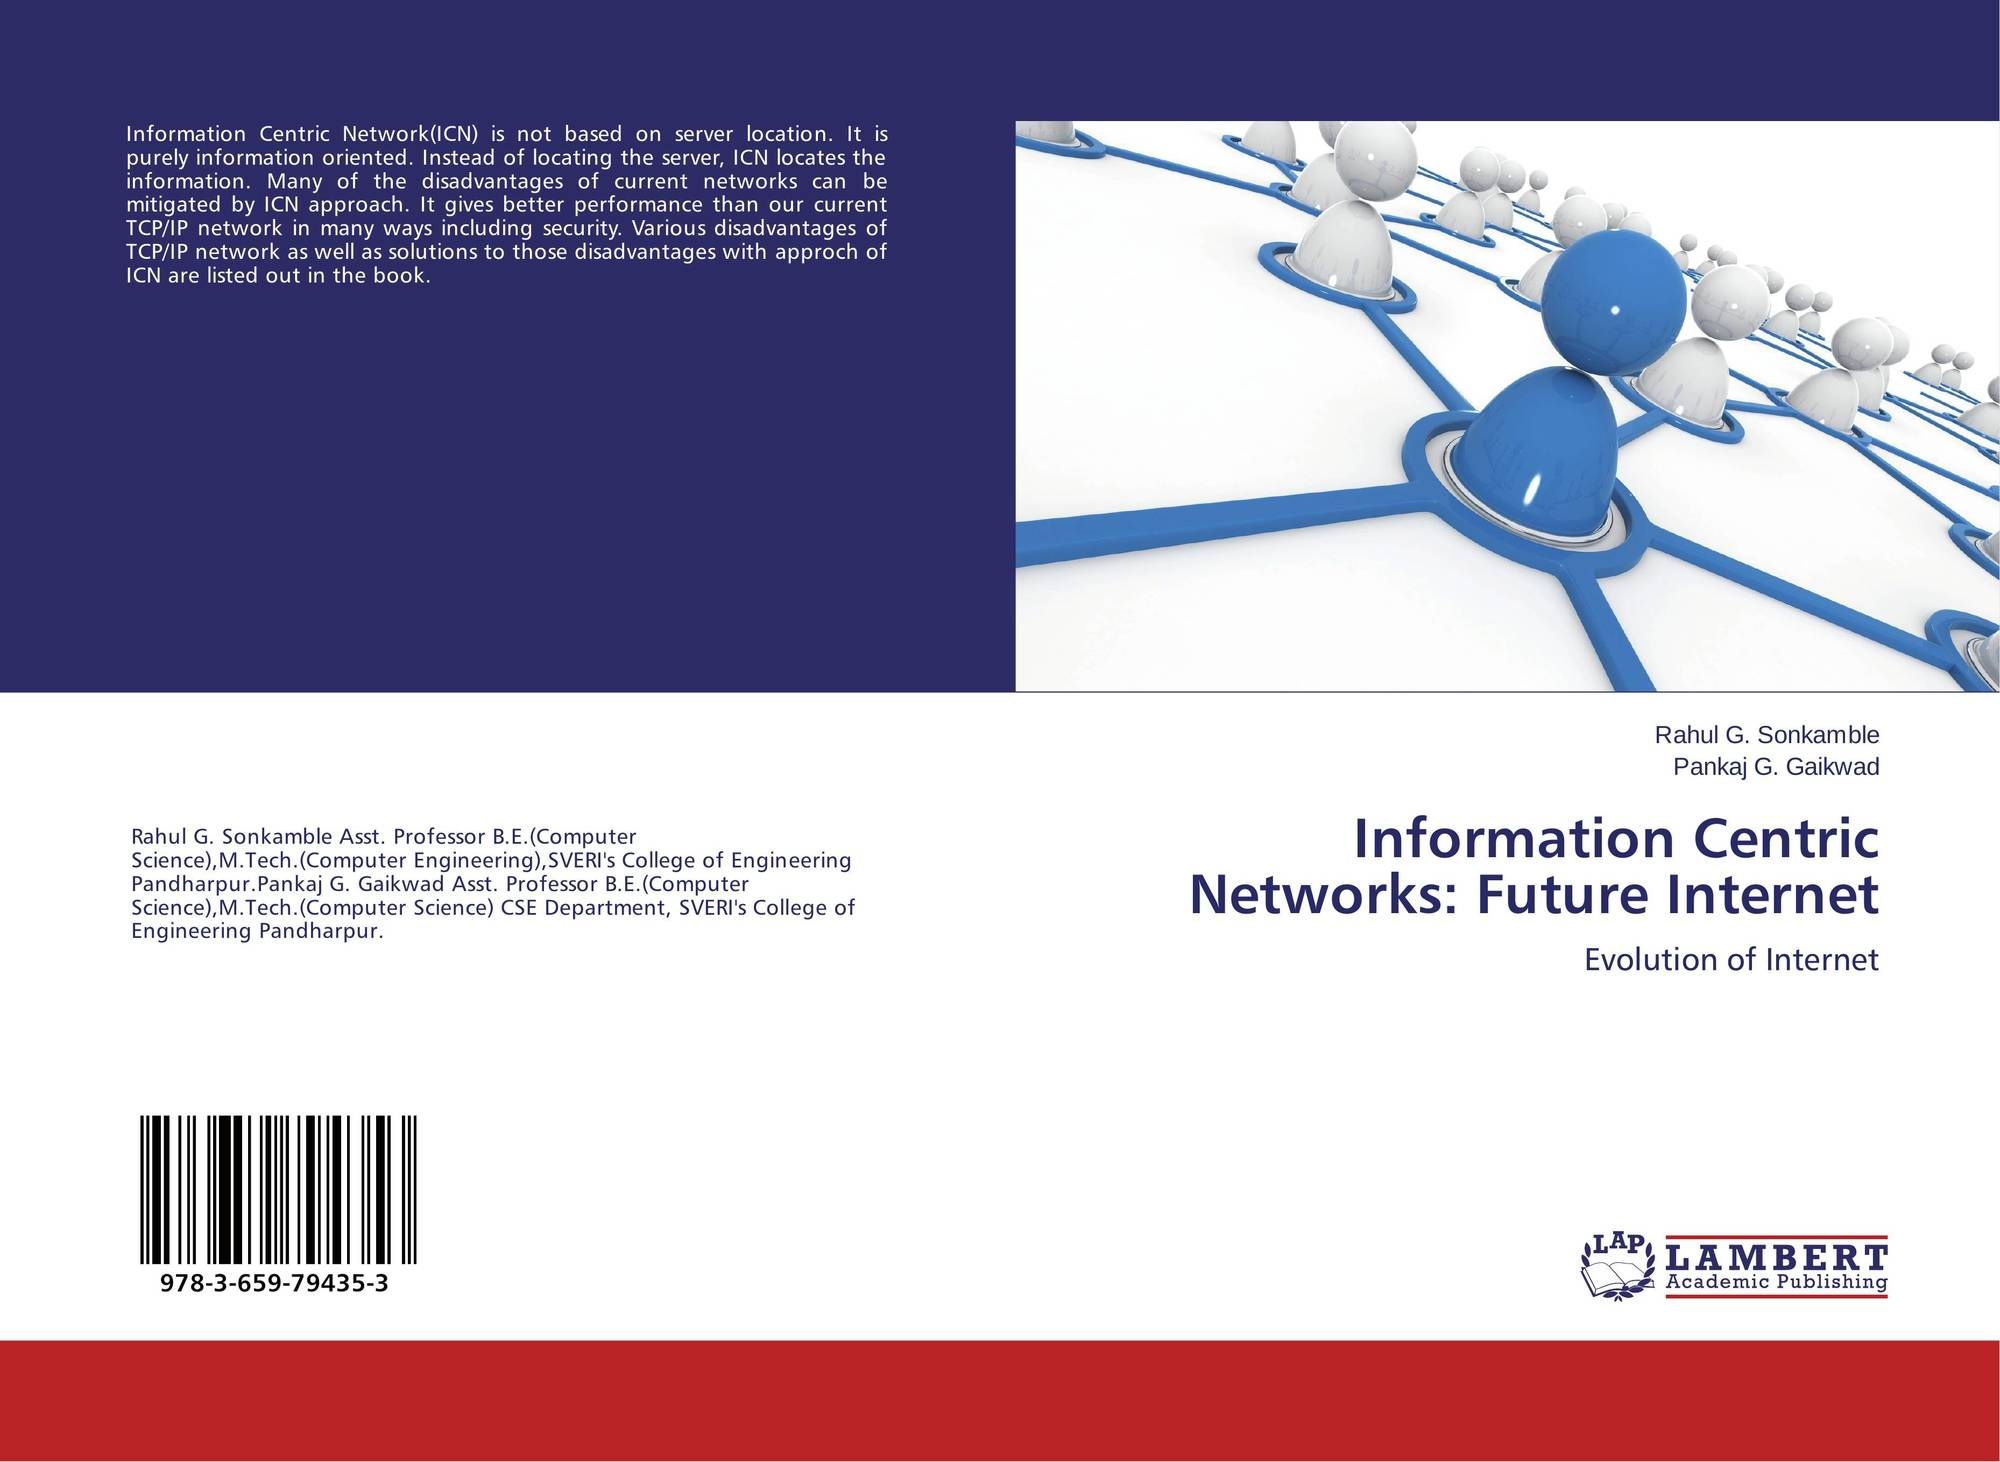 Information Centric Networks: Future Internet, 978-3-659